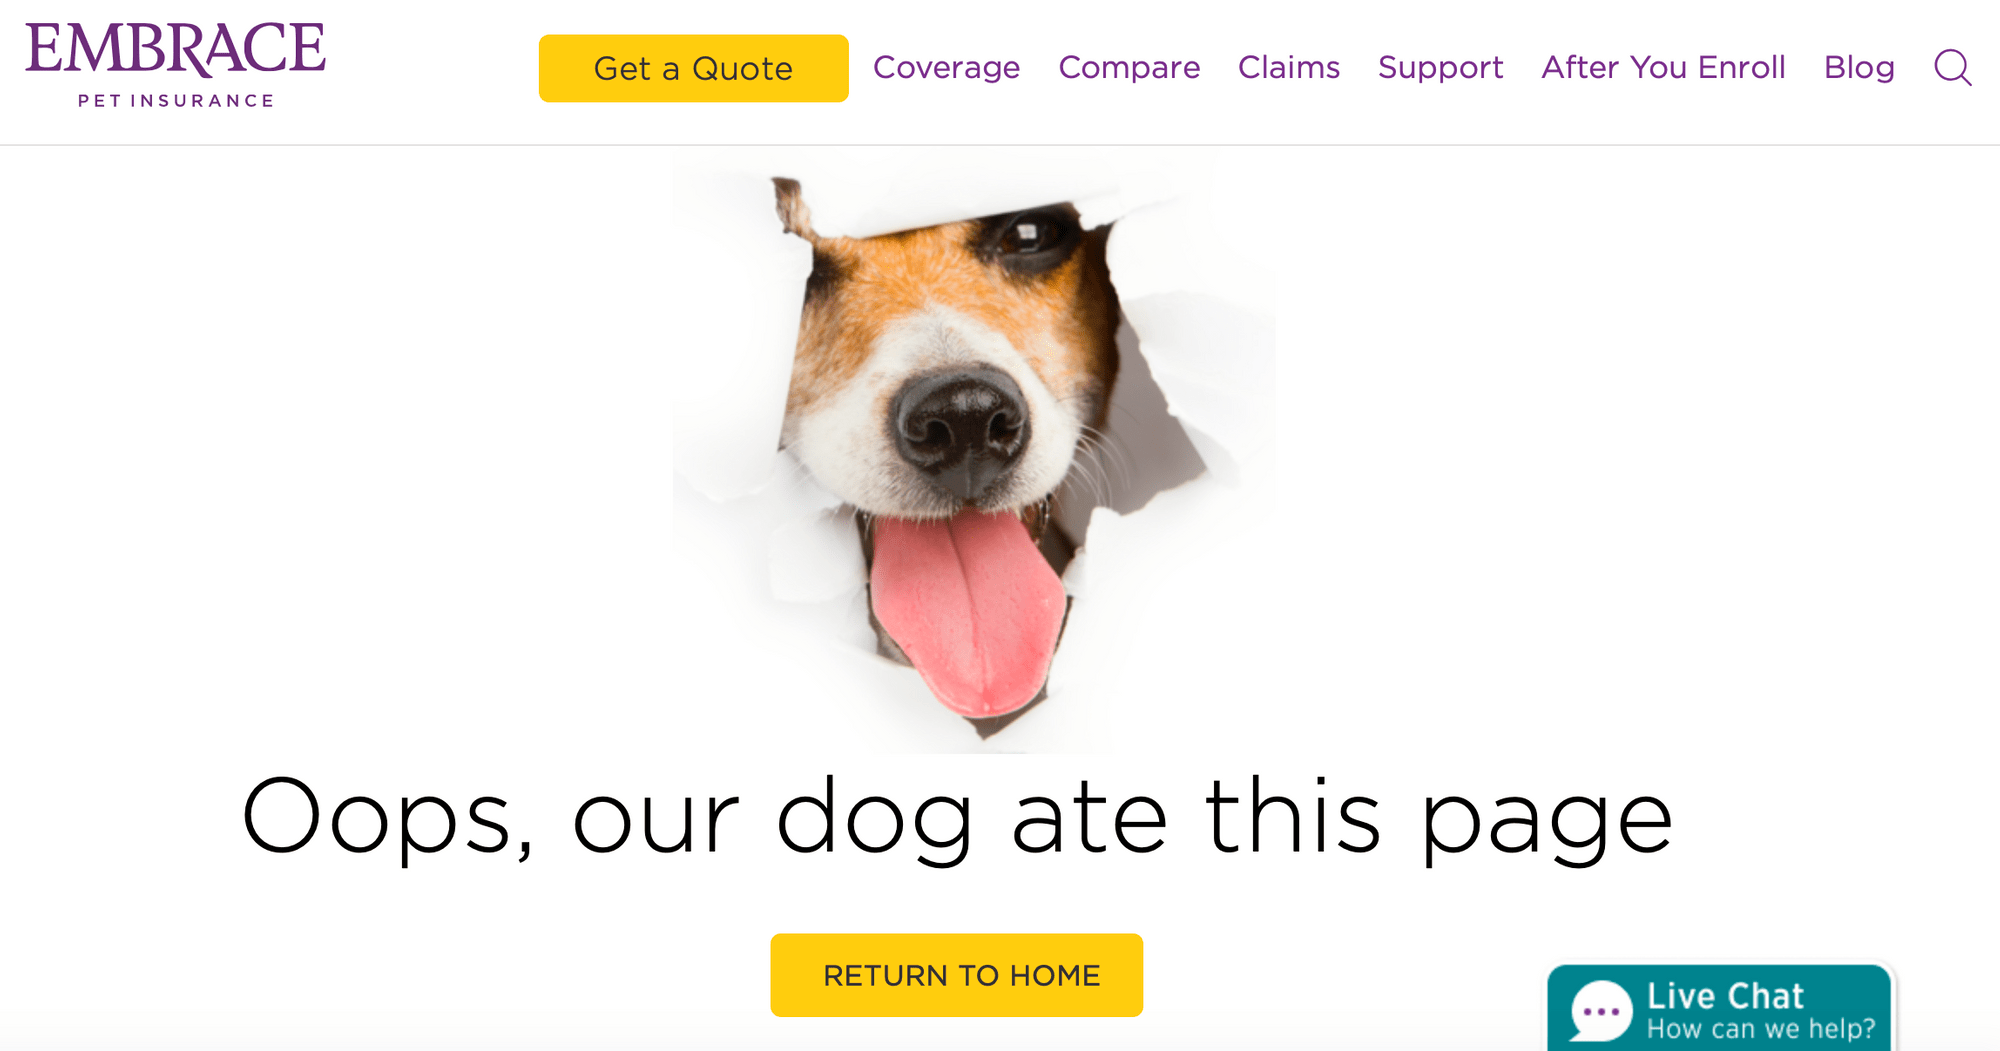 La page d'erreur Embrace Pet Insurance 404.